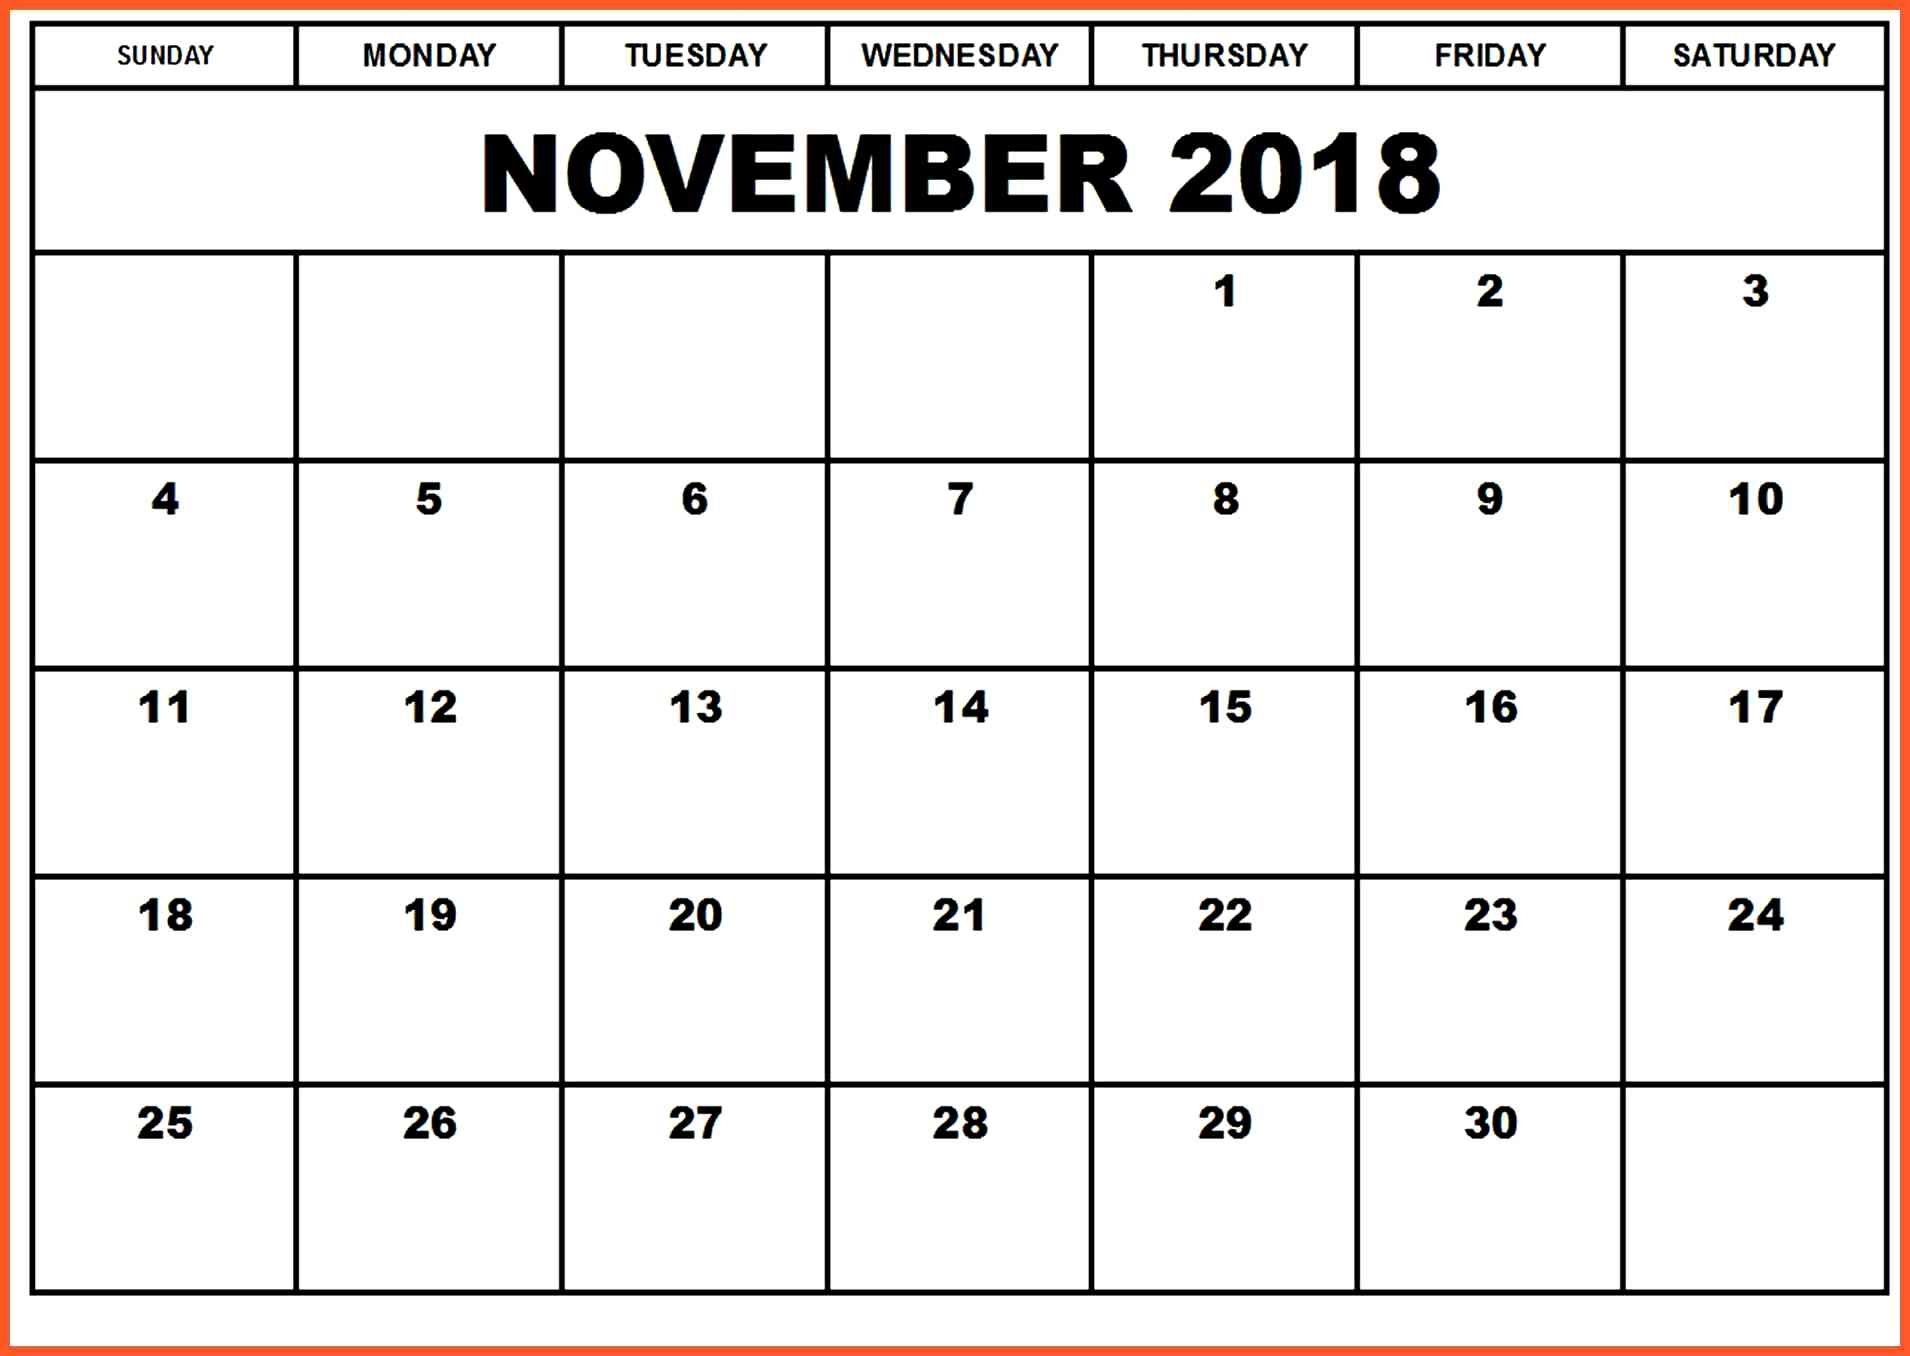 november 2018 calendar excel worksheet printable calendar 2018 November 2018 Excel Calendar erdferdf